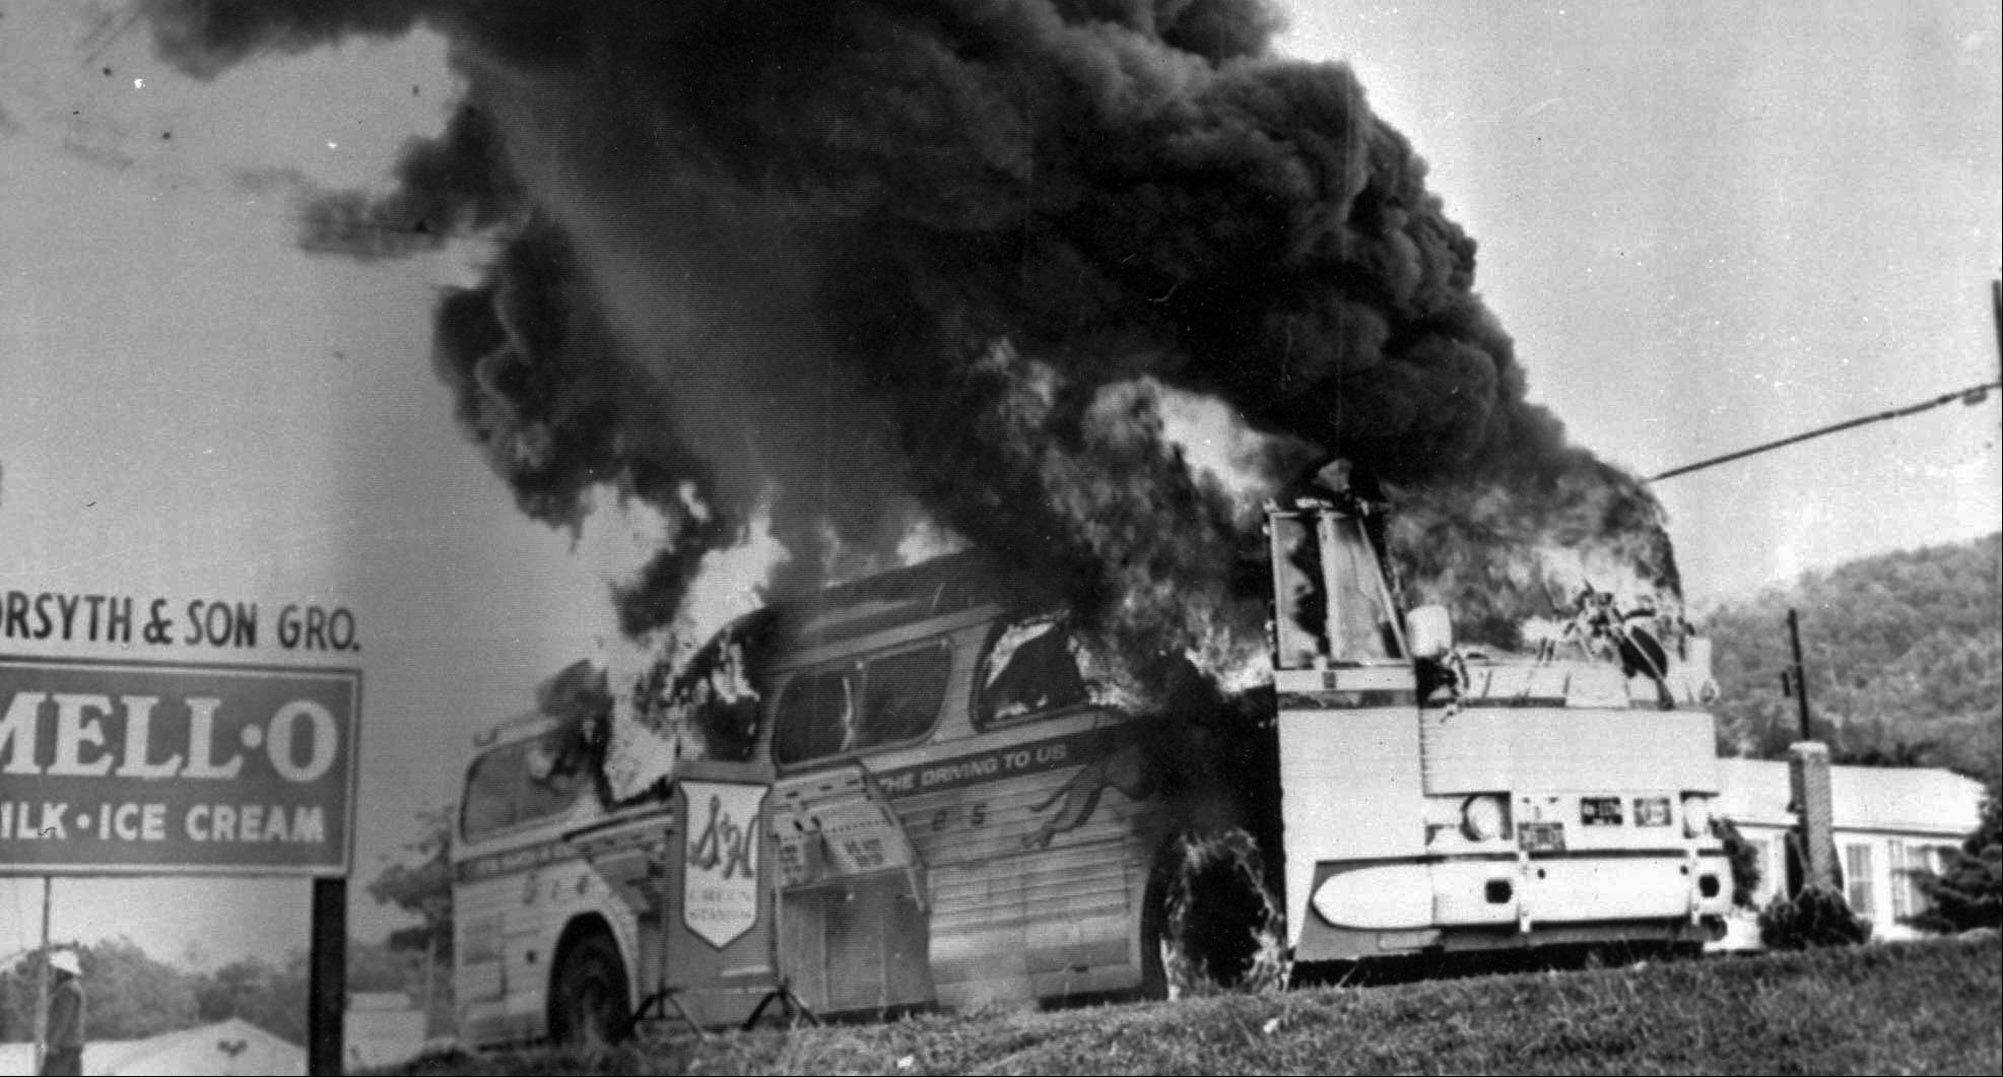 A Freedom Rider bus went up in flames when a fire bomb was tossed through a window May 15, 1961, near Anniston, Ala. Passengers escaped without serious injury.